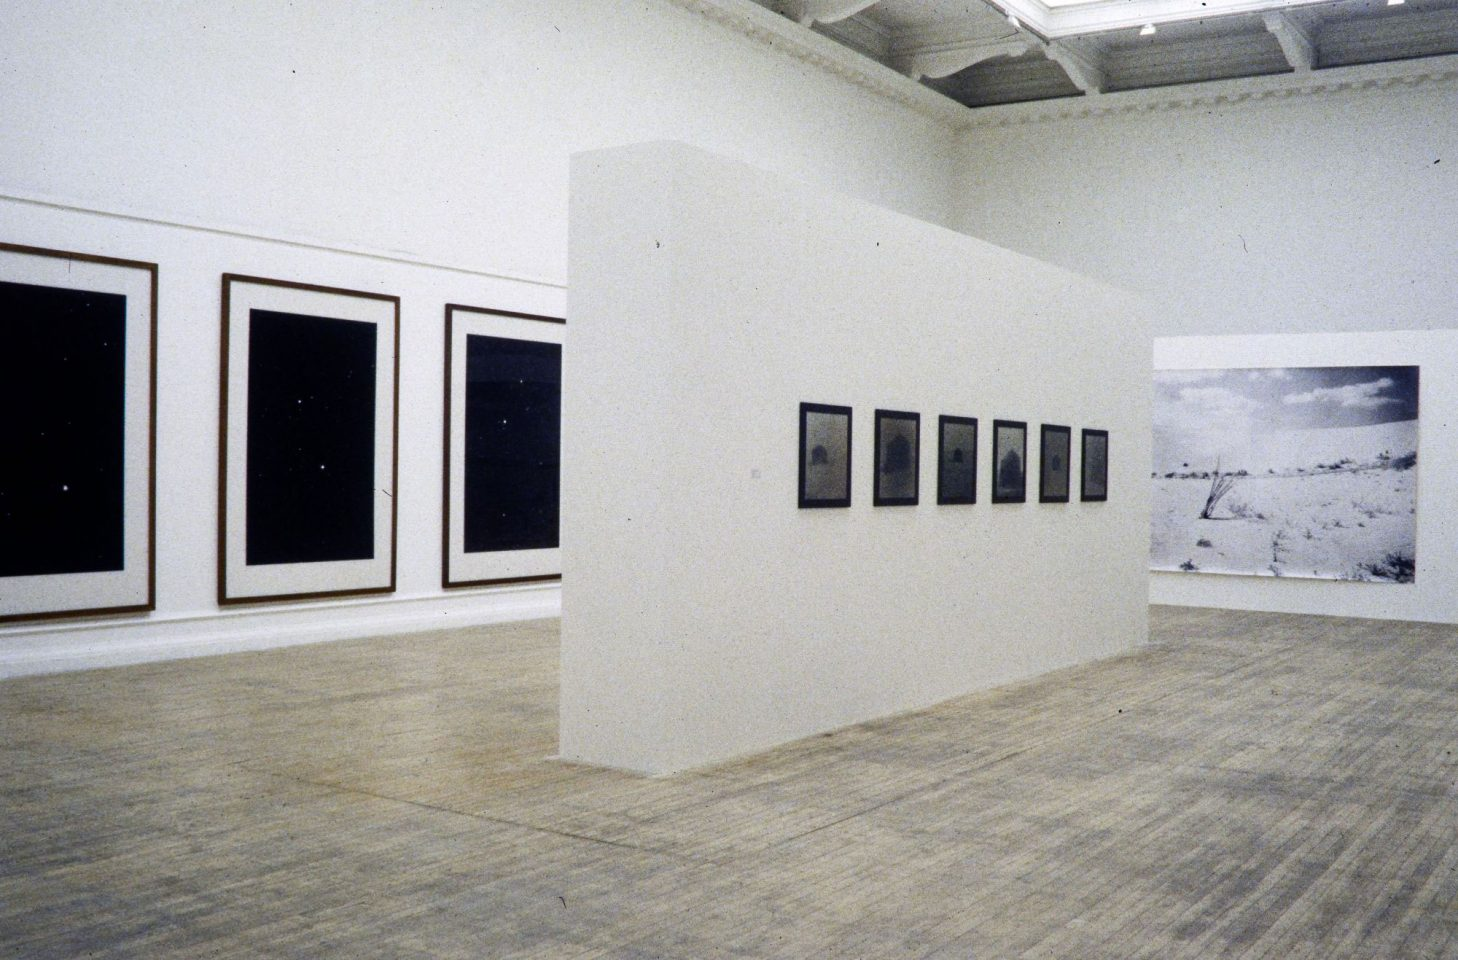 Installation view from 1997 exhibition Desert, featuring works by Hannah Collins, Knut Maron, Sophie Ristelhueber, Michael Rovner, Thomas Ruff, Frederick Sommer, Bill Viola, Verdi Yahooda. Curated by Jim Harold.